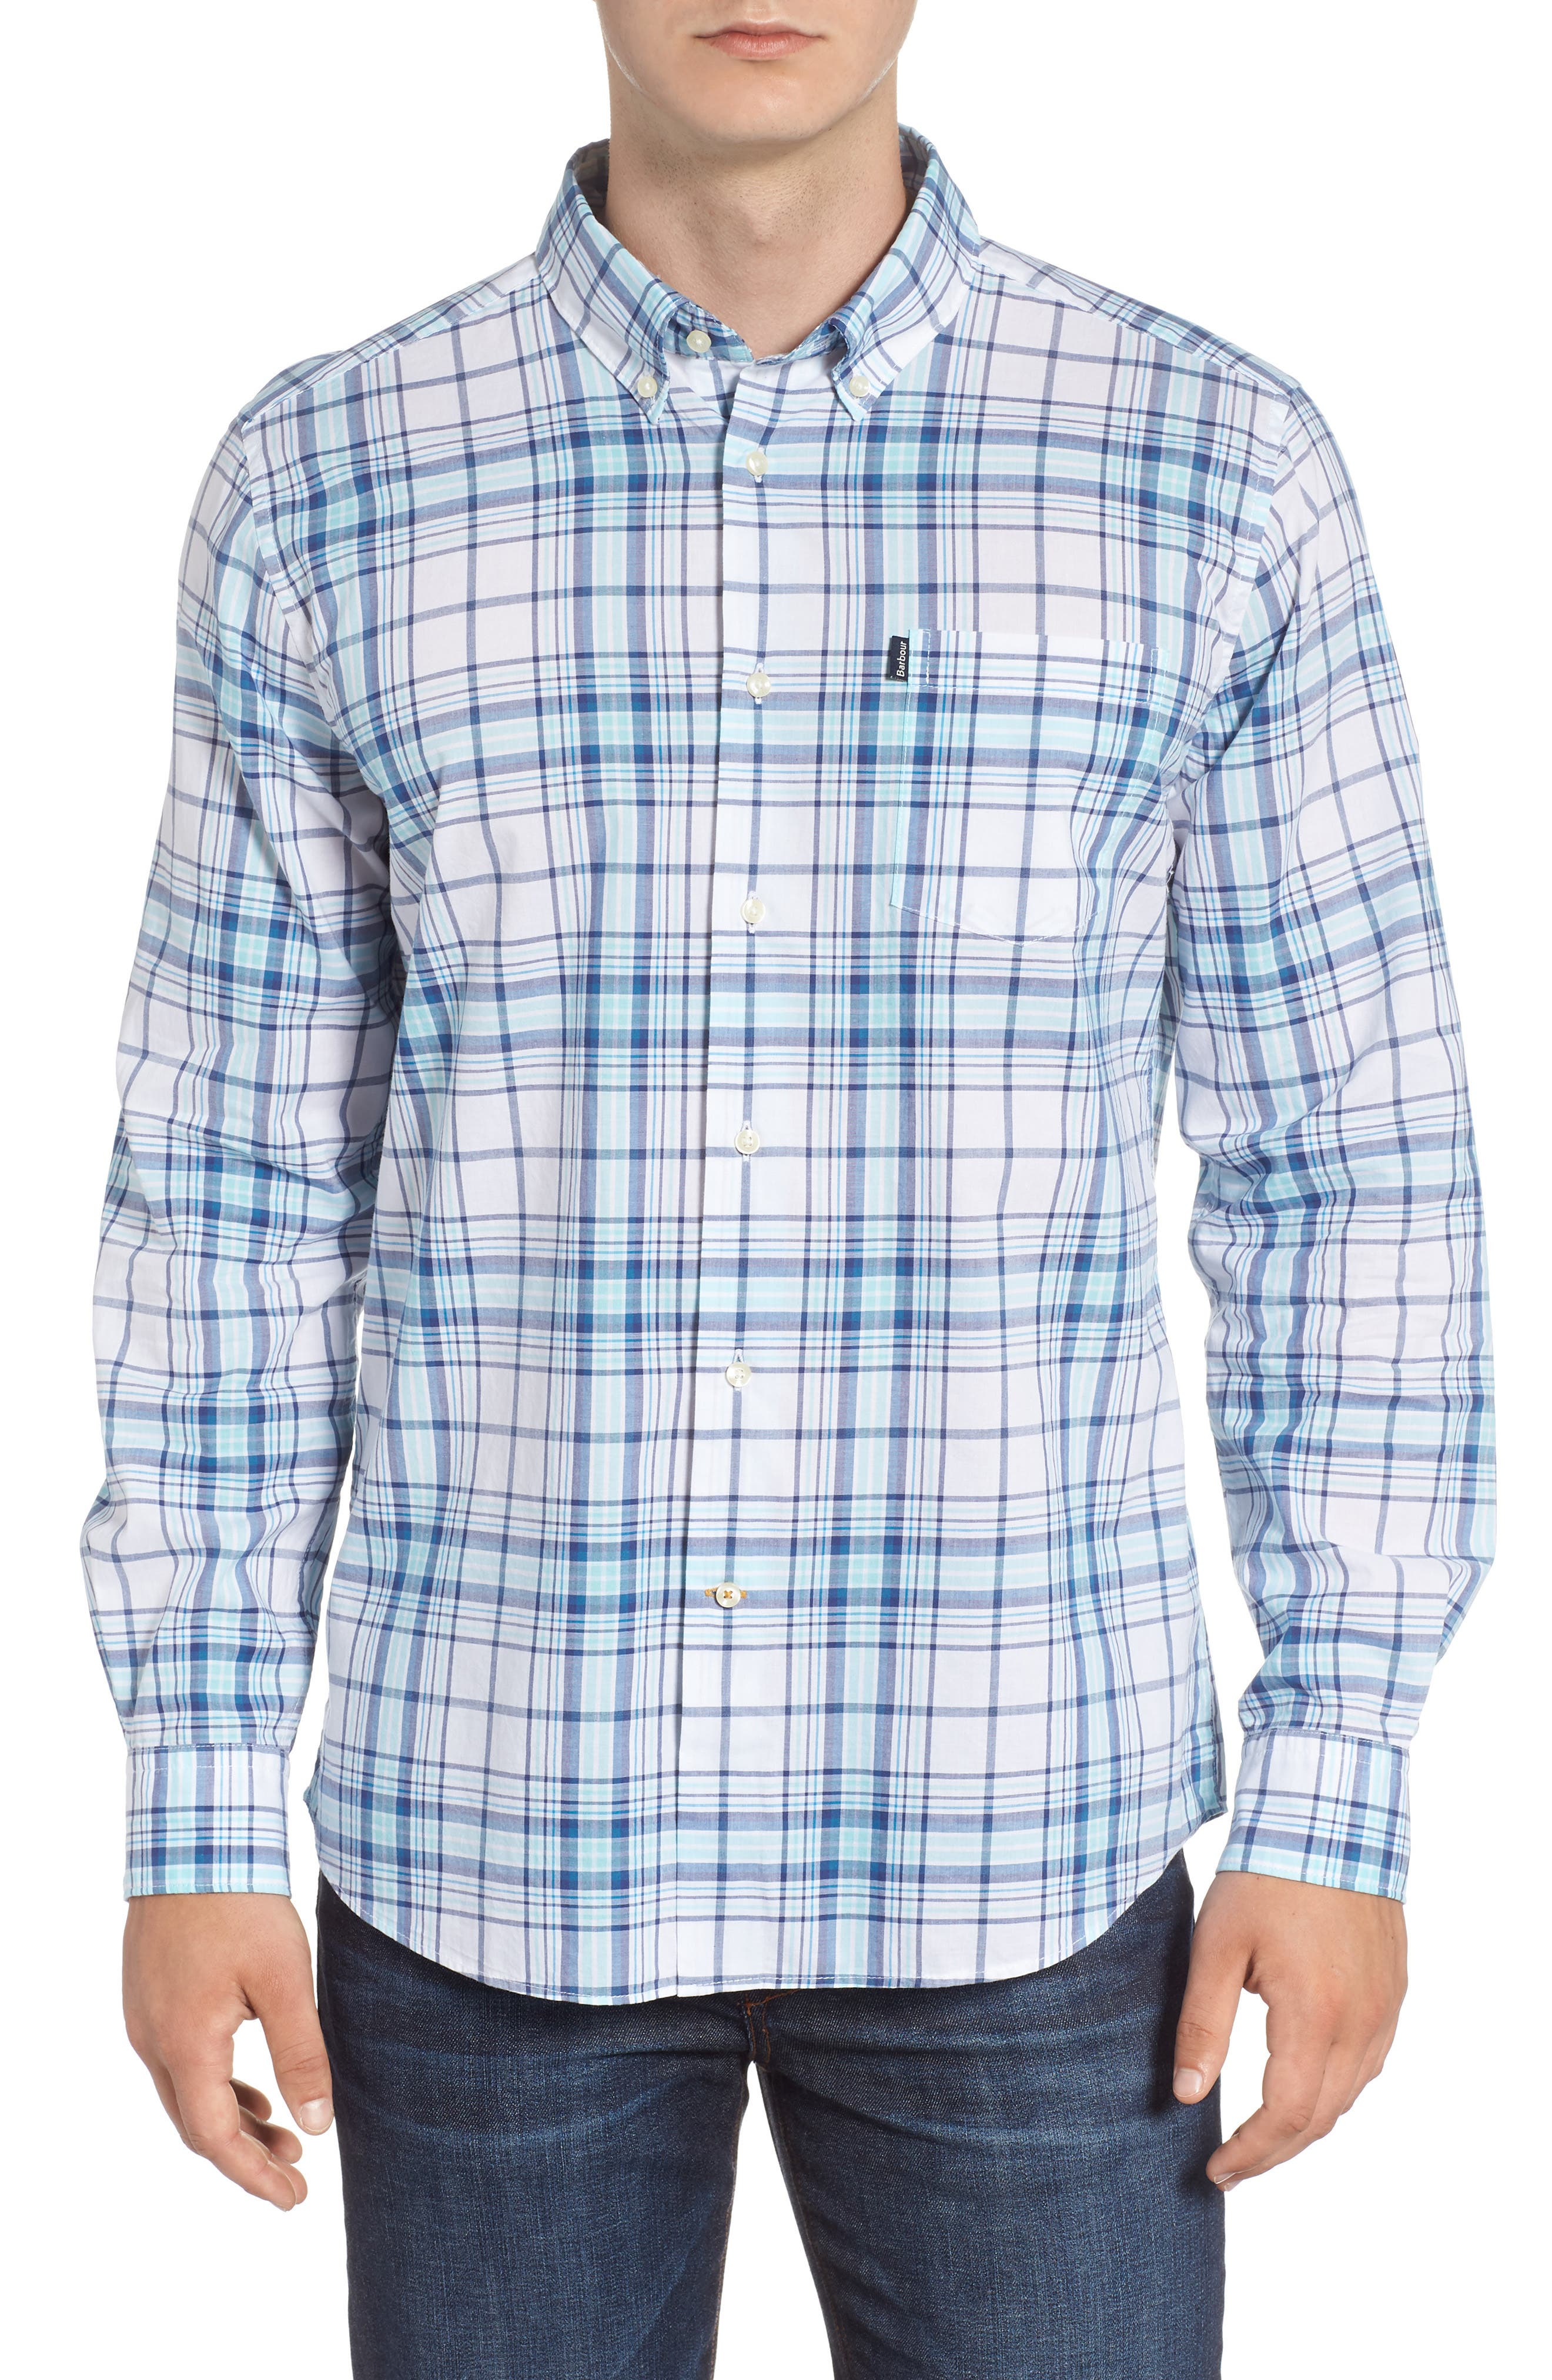 Christopher Tailored Fit Plaid Sport Shirt,                             Main thumbnail 1, color,                             440